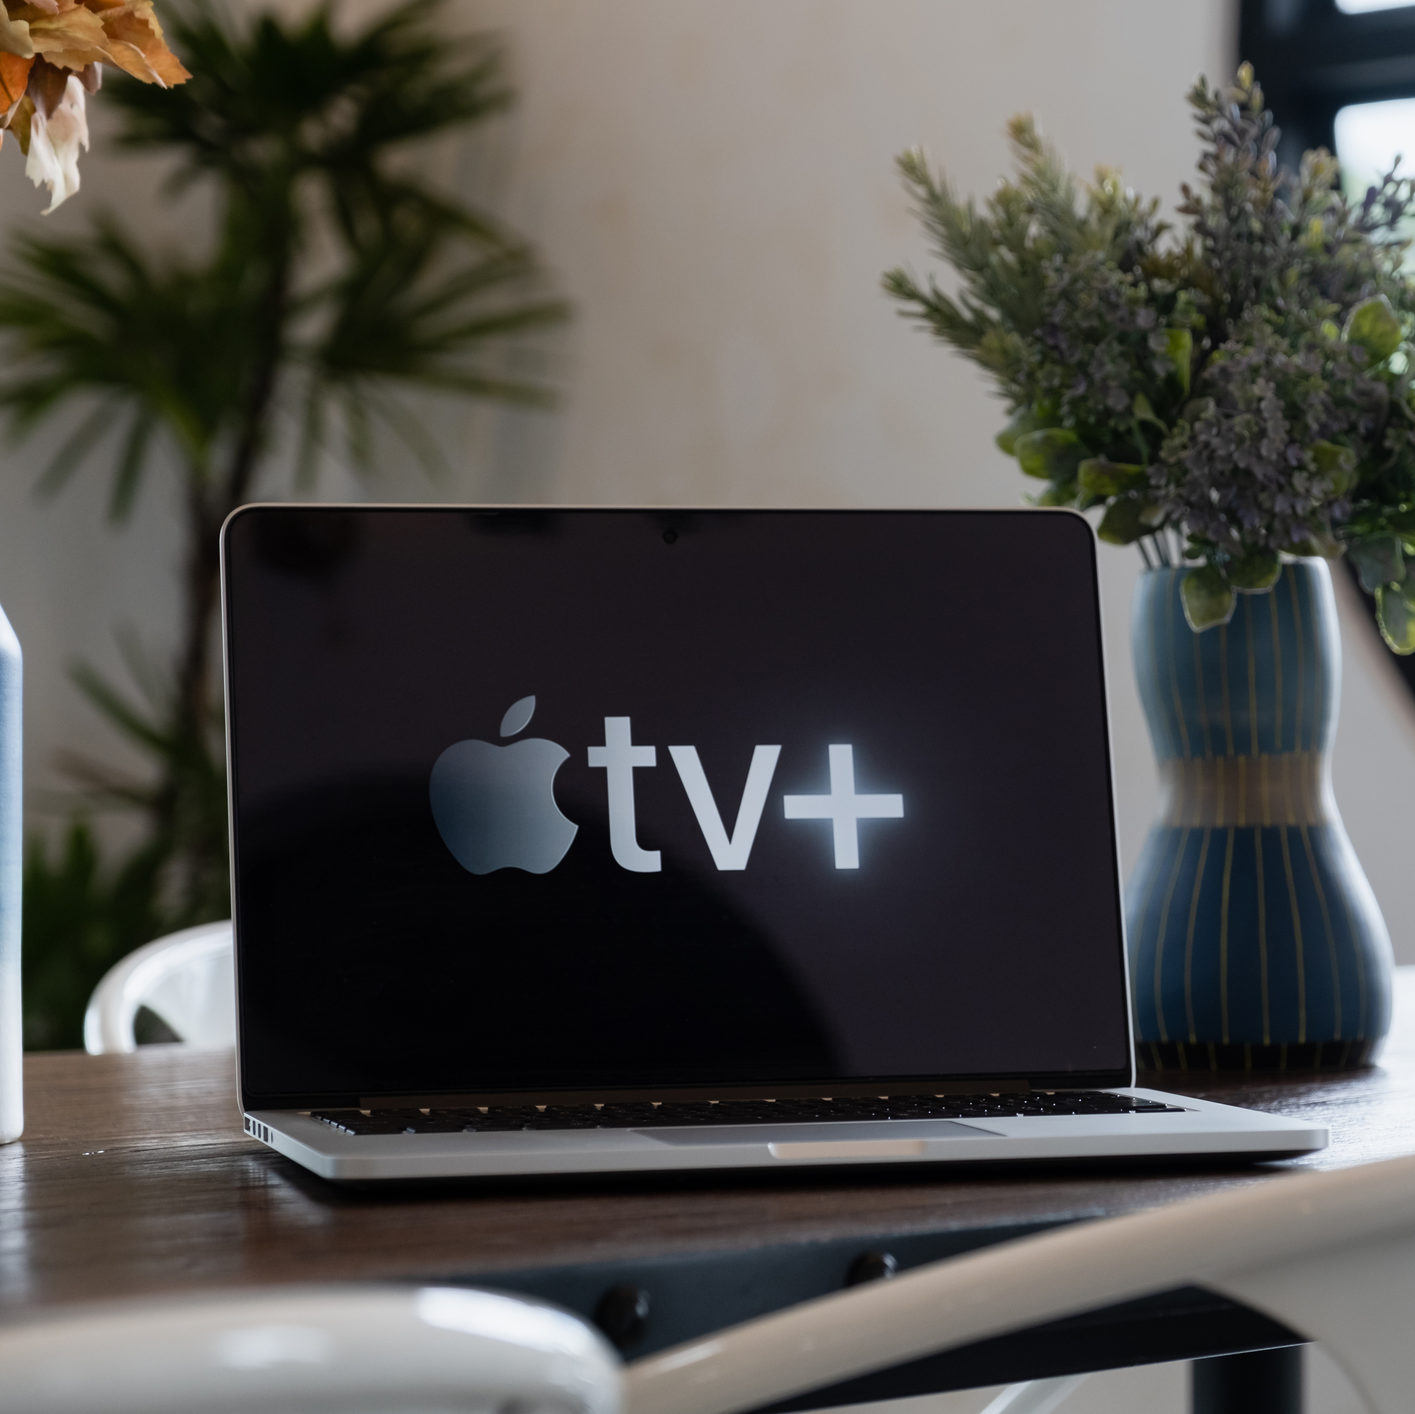 T-Mobile customers can get one year of Apple TV+ FREE